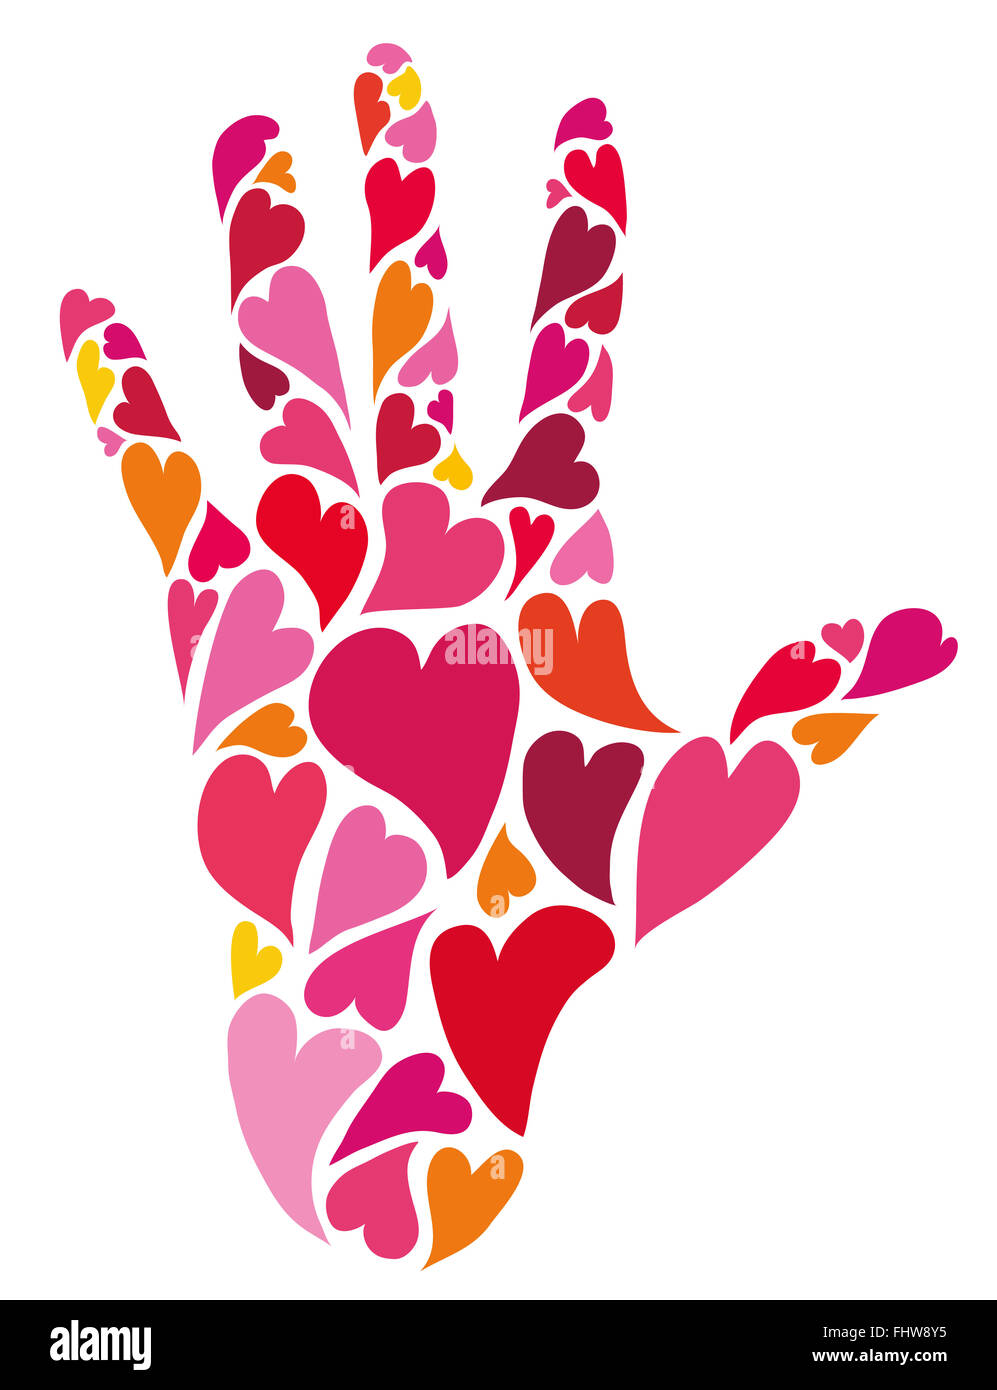 Caring hand made of hearts. Love symbol. - Stock Image